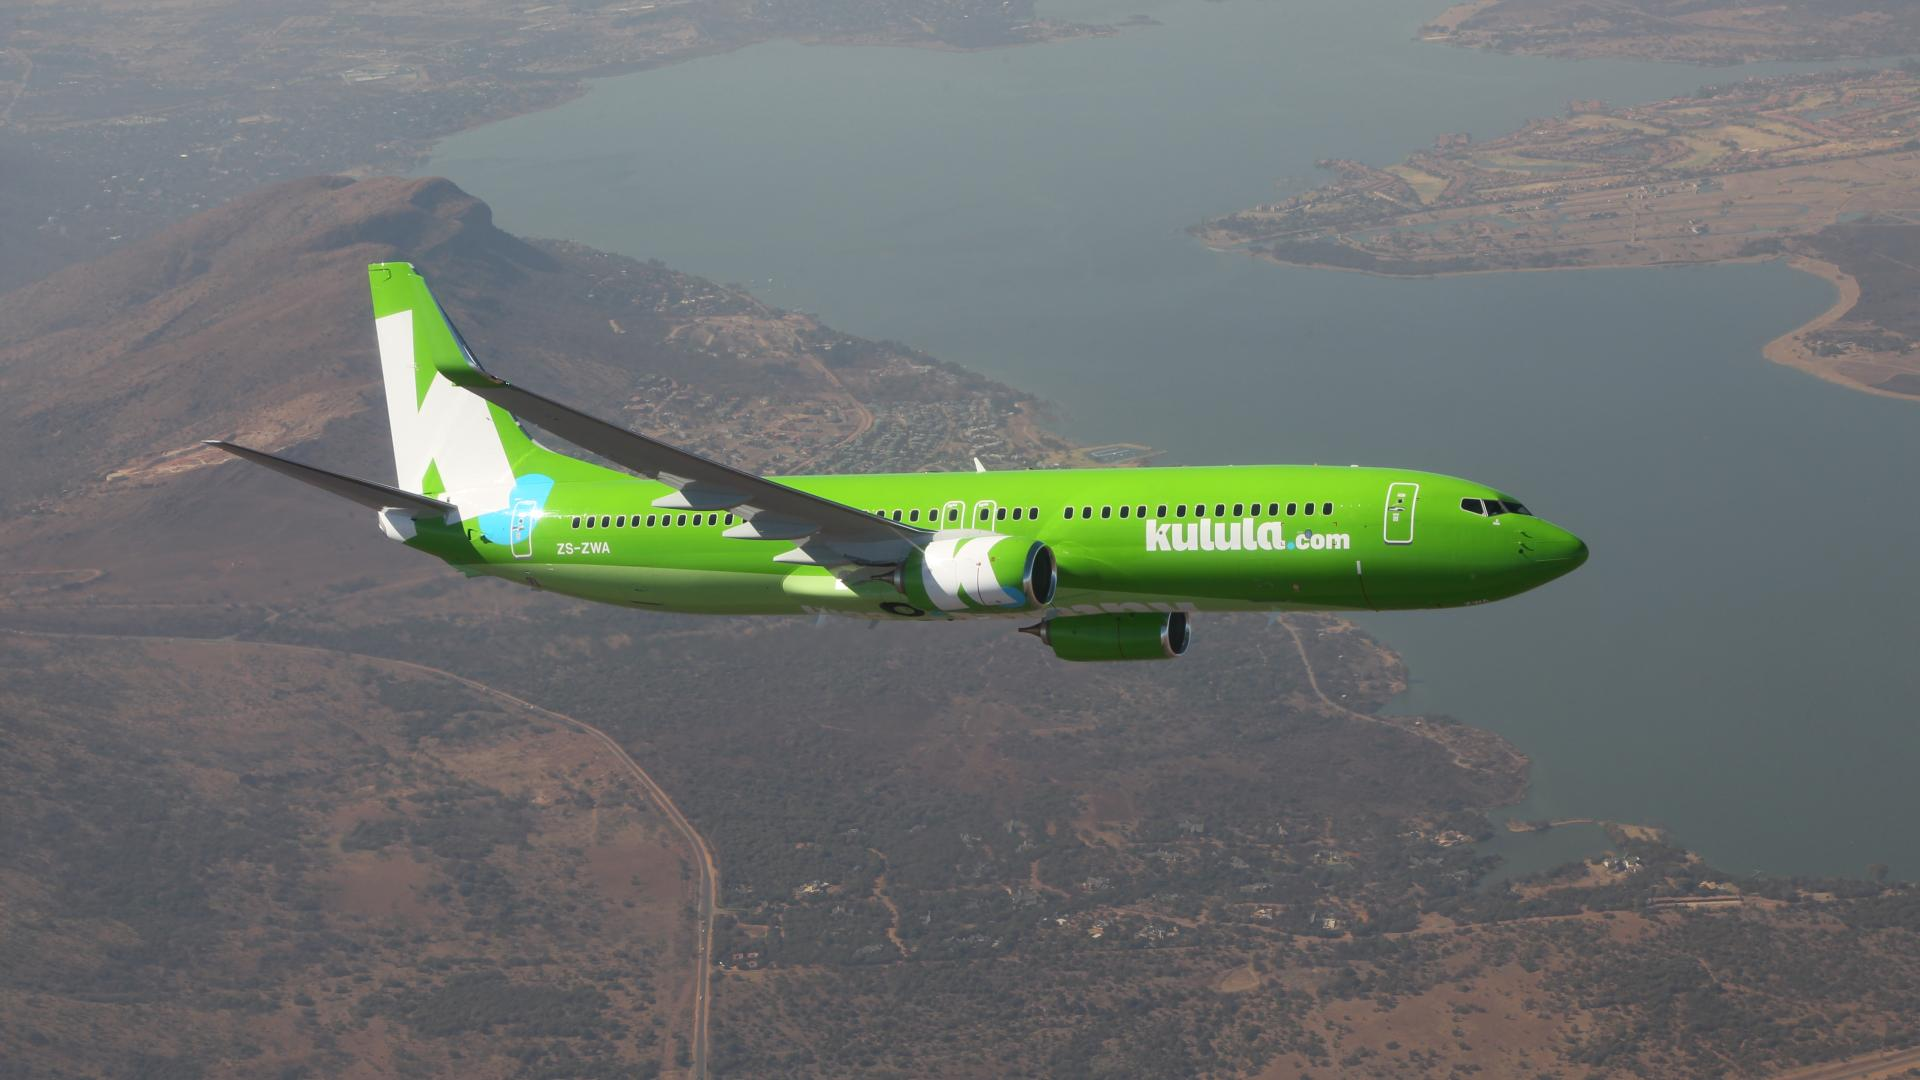 Boeing 737 of Comair under technical support of Lufthansa Technik